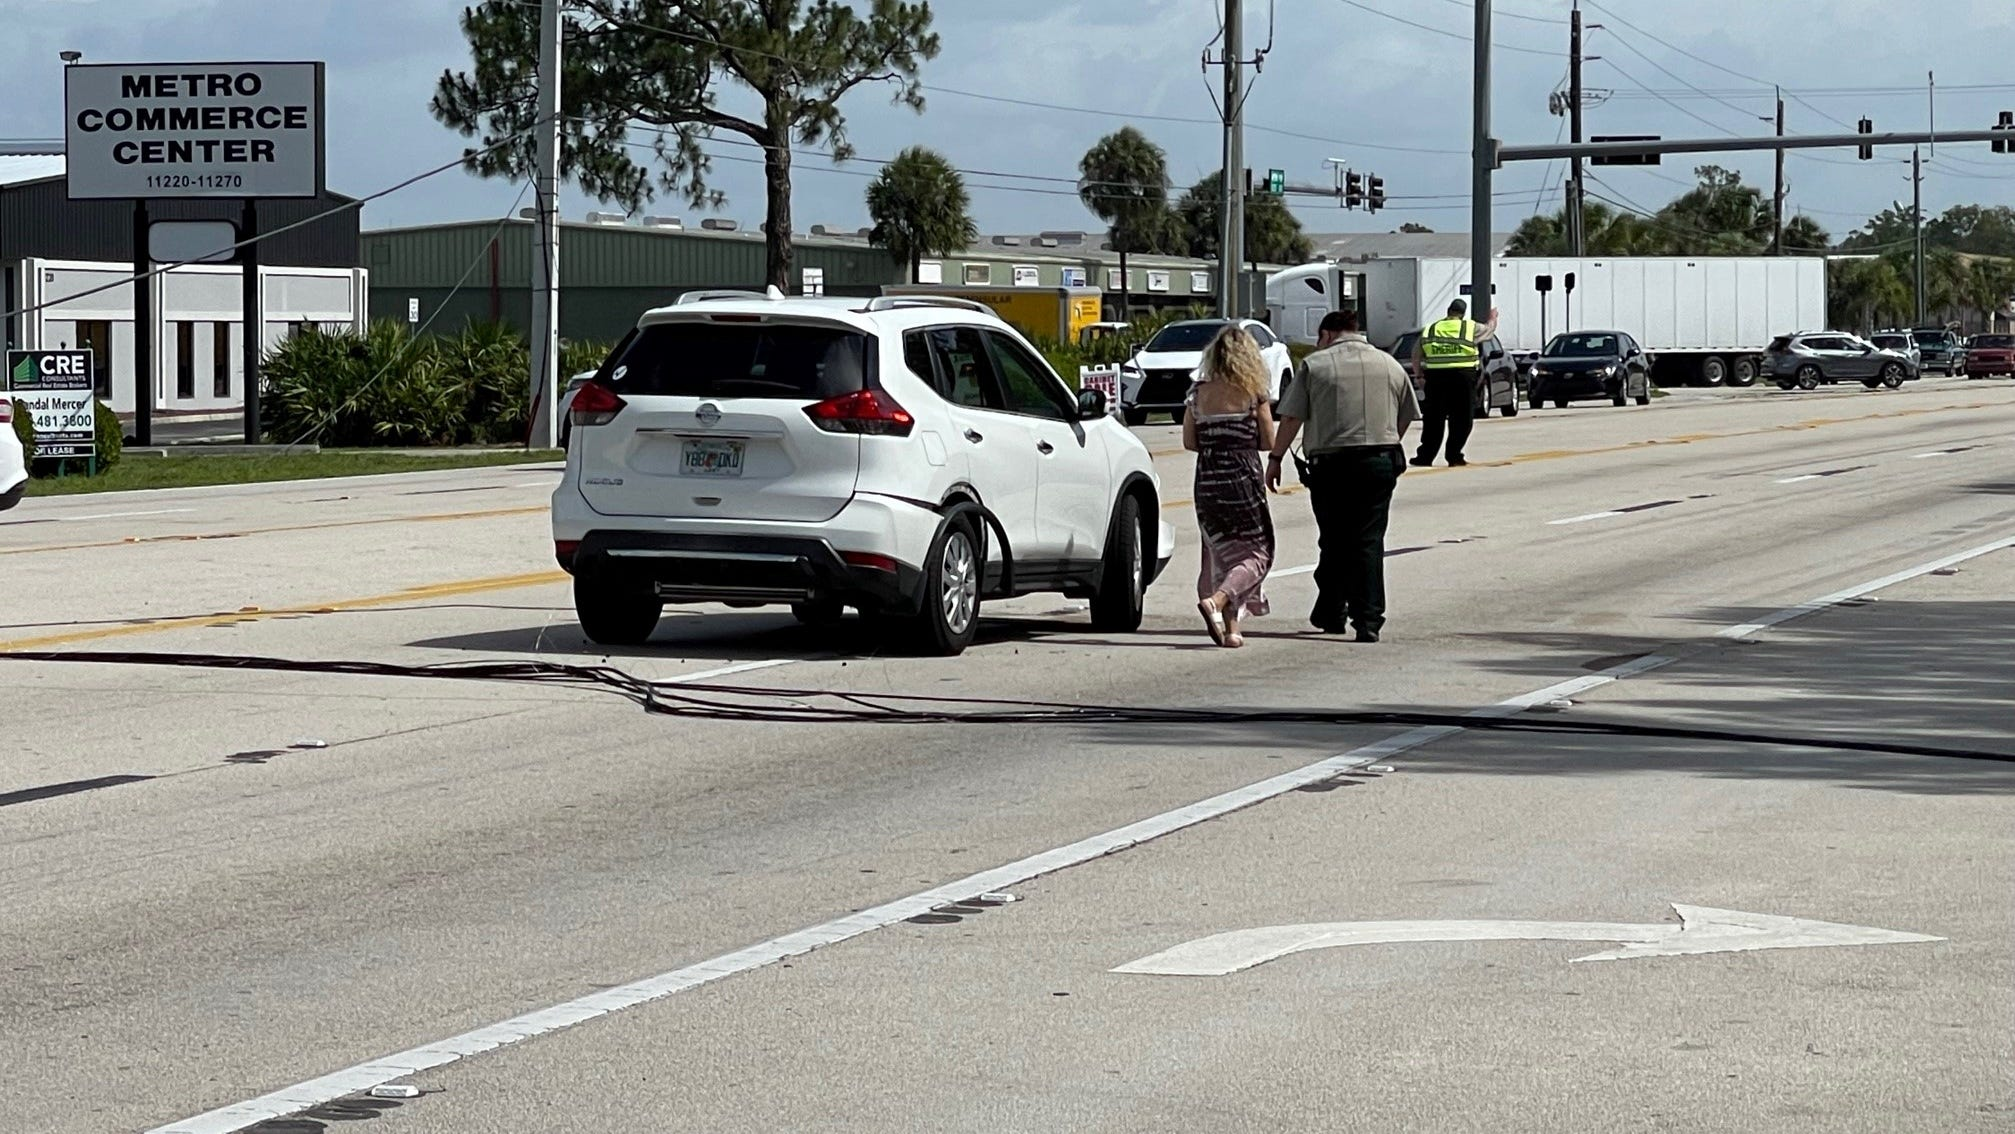 Downed utility lines crossing Metro Parkwayshut down the busy roadway Tuesday morning diverting trafficdown side streets and briefly trapping Elizeth Lopes of North Fort Myers in her SUV.